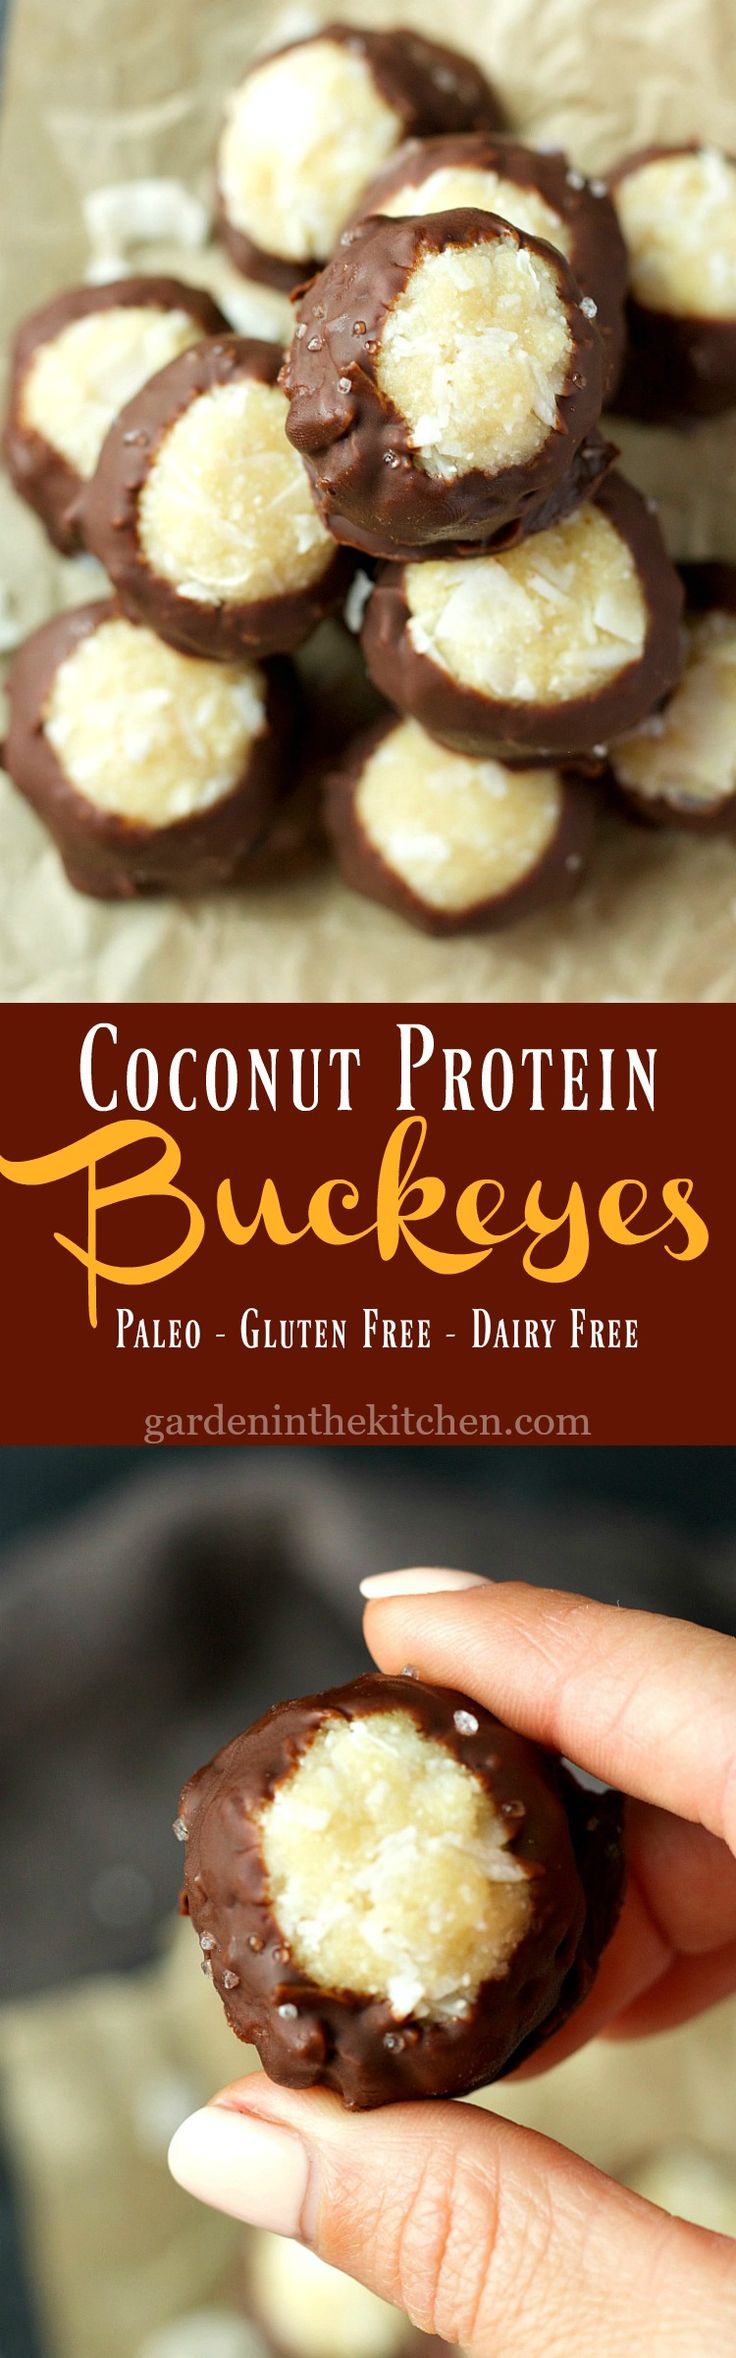 Coconut Protein Buckeyes (Paleo, Gluten-free, Dairy-free) | Garden in the Kitchen